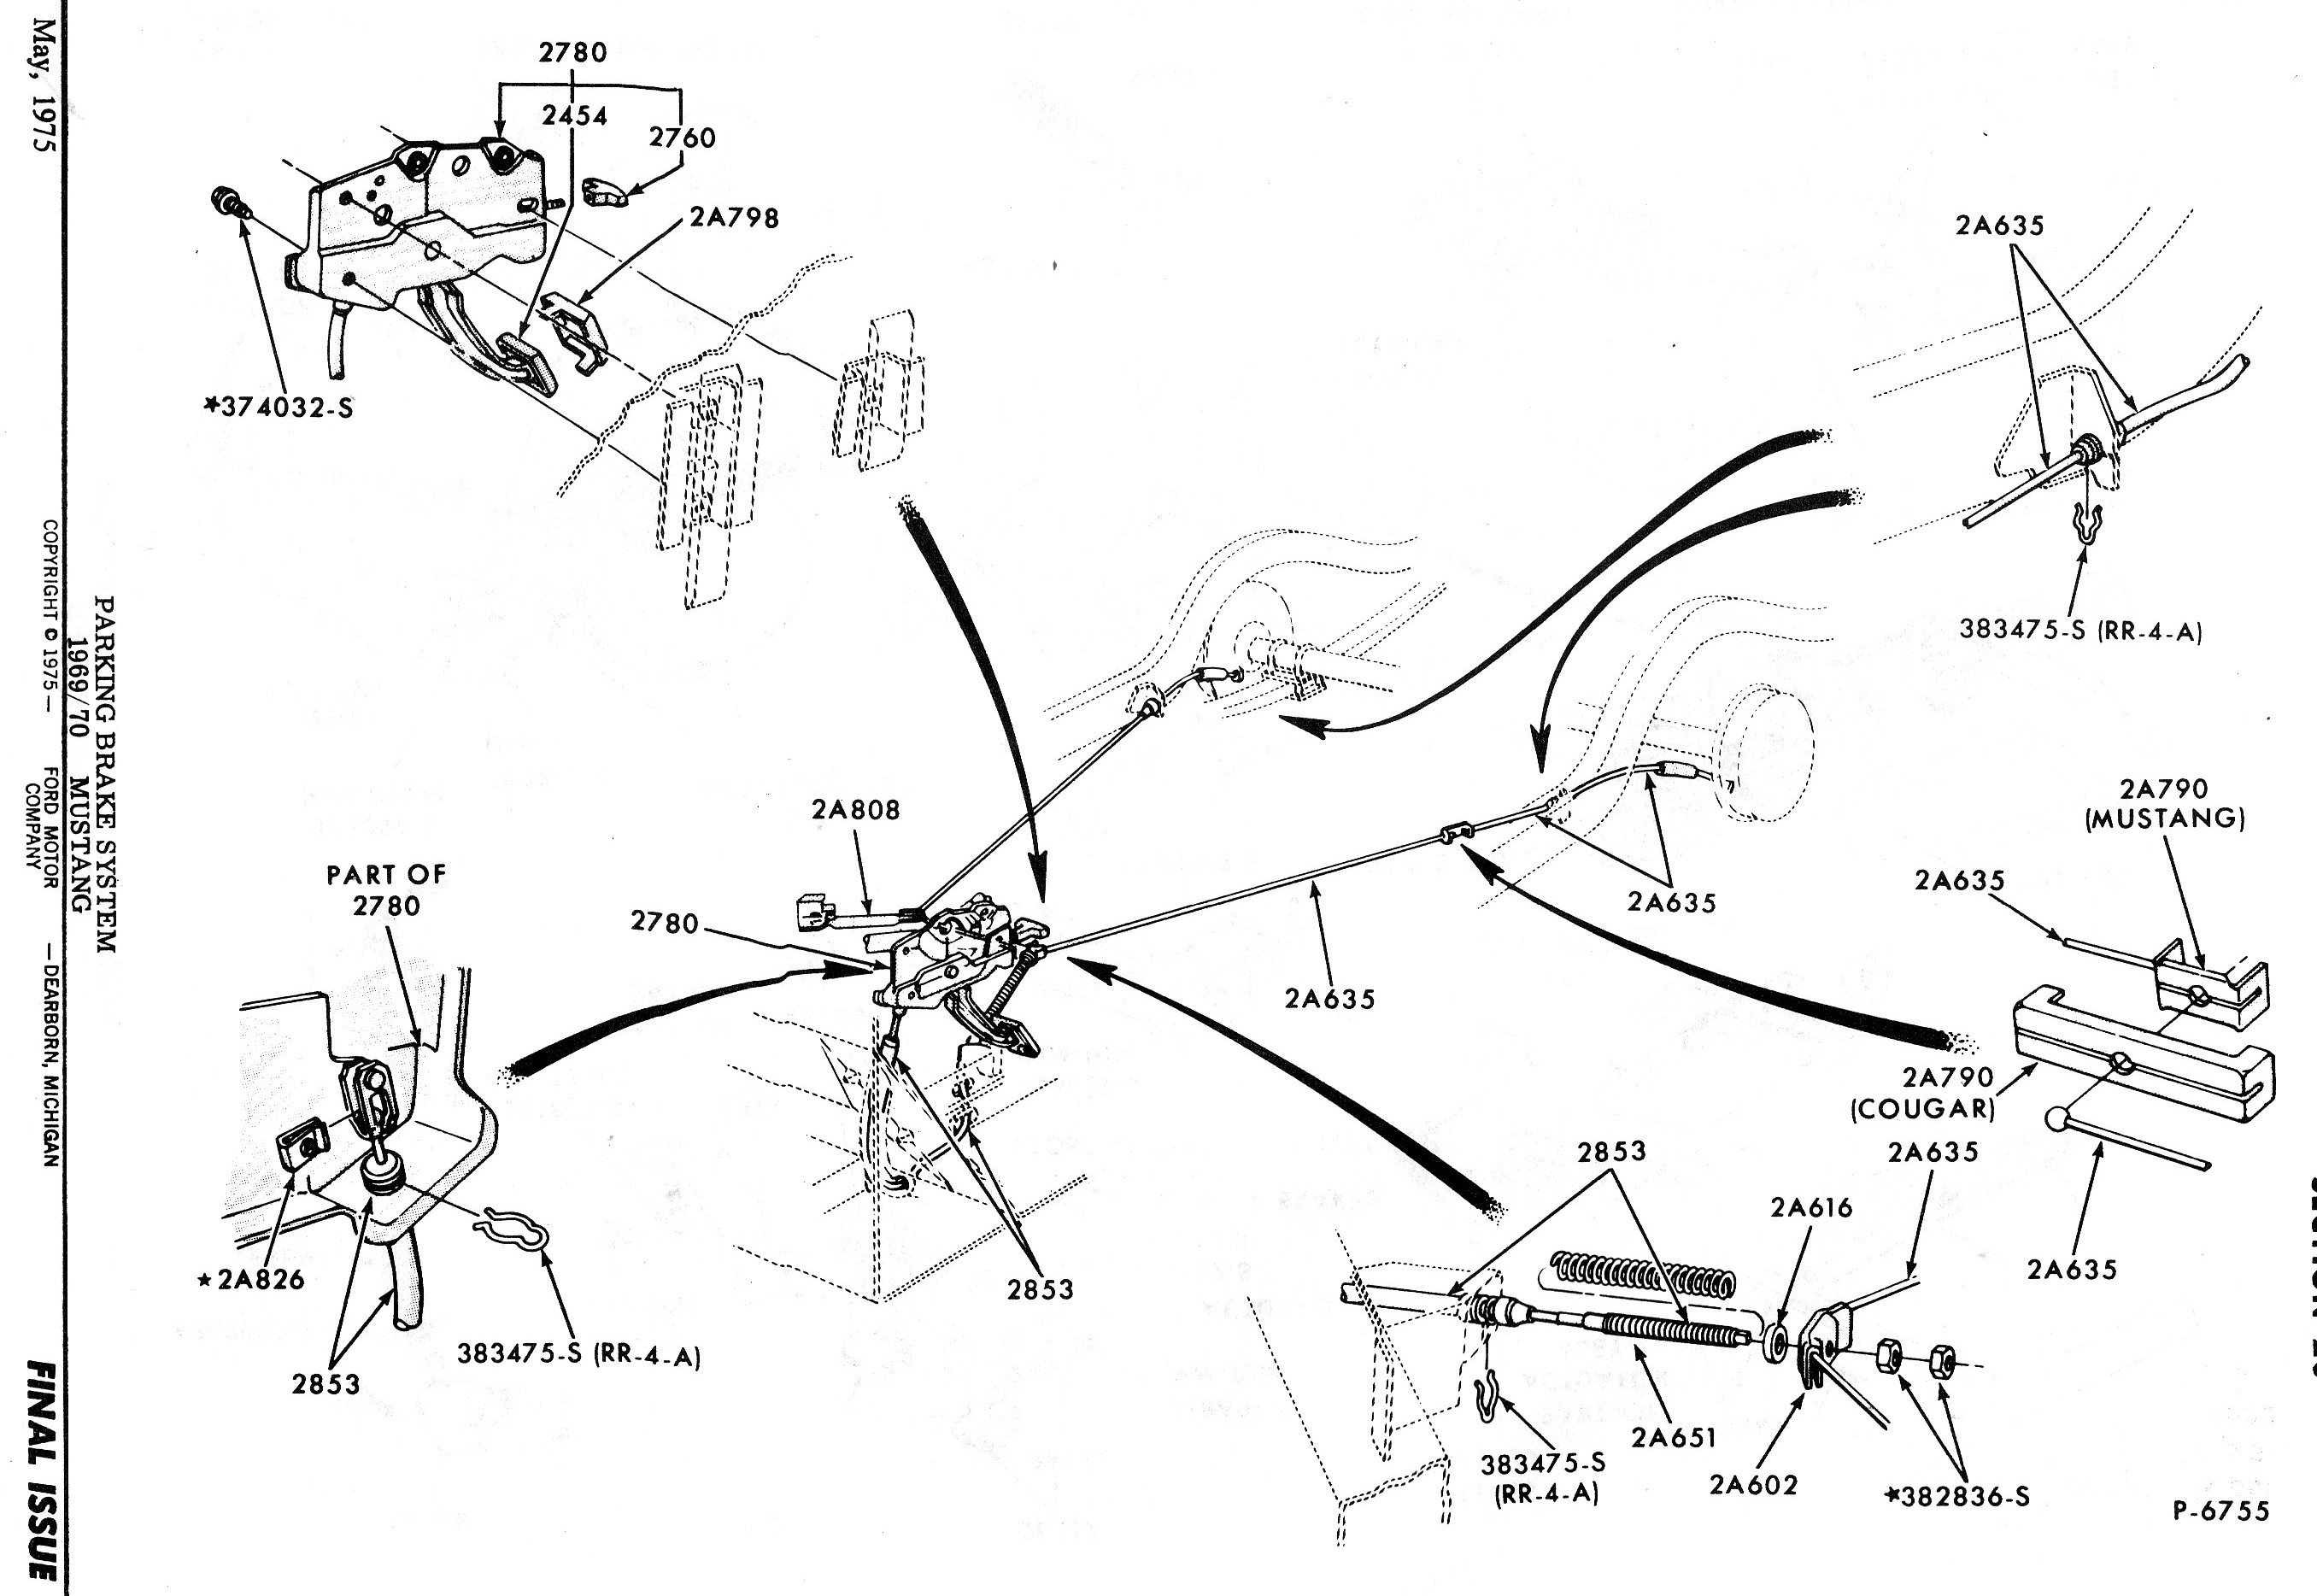 Ford 4r100 Transmission Wiring Diagram in addition 95 Mustang Abs Line Diagram besides Ac Motor Diagrams likewise Flathead Ford Engine Drawing further F350 Front Suspension Diagram 1986. on mustang engine wiring diagram